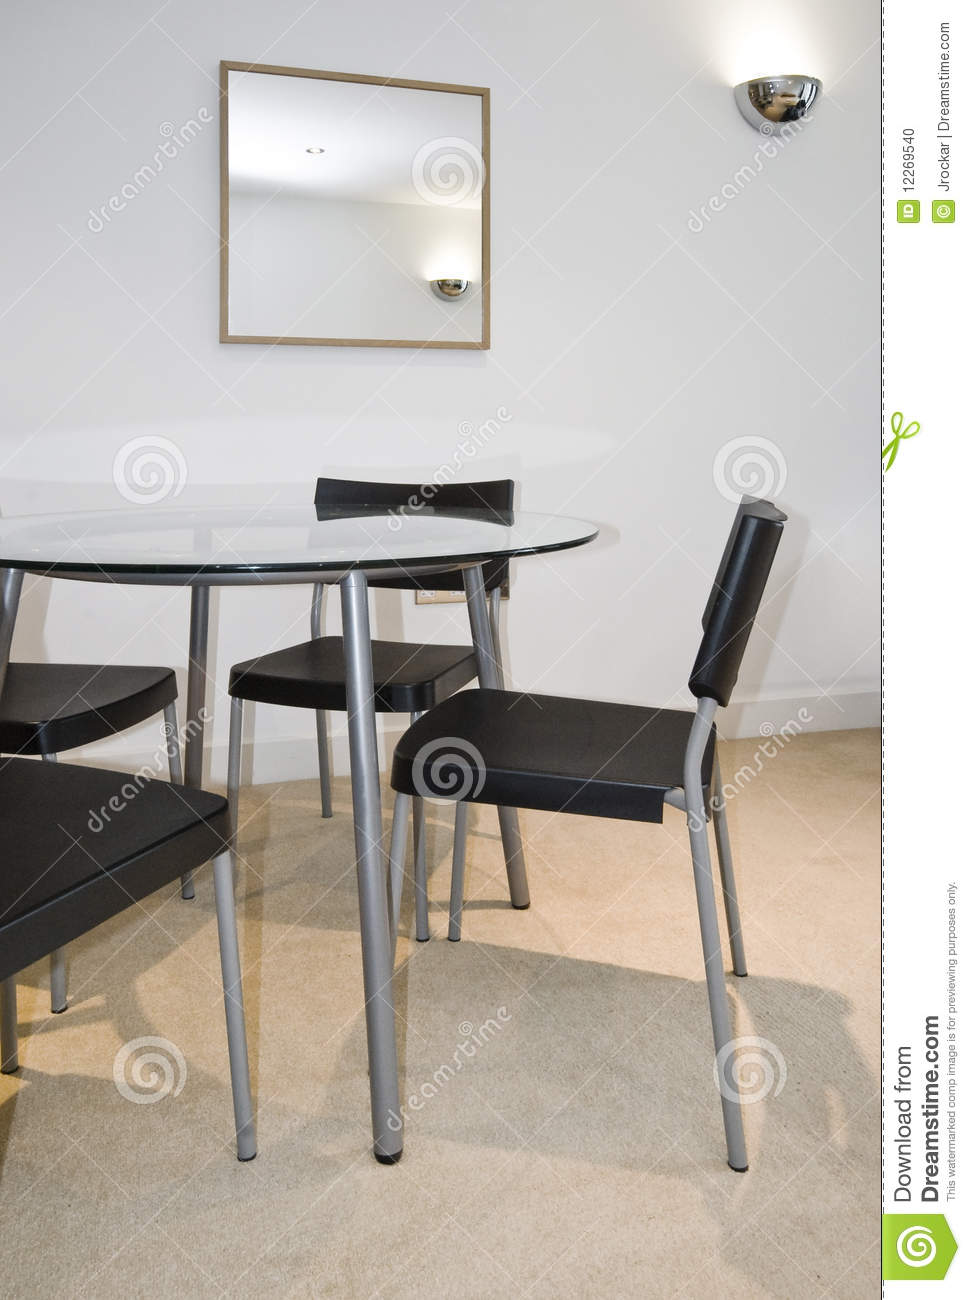 Cheap Dining Table Detail Stock Photo Image 12269540 : cheap dining table detail 12269540 from www.dreamstime.com size 971 x 1300 jpeg 108kB